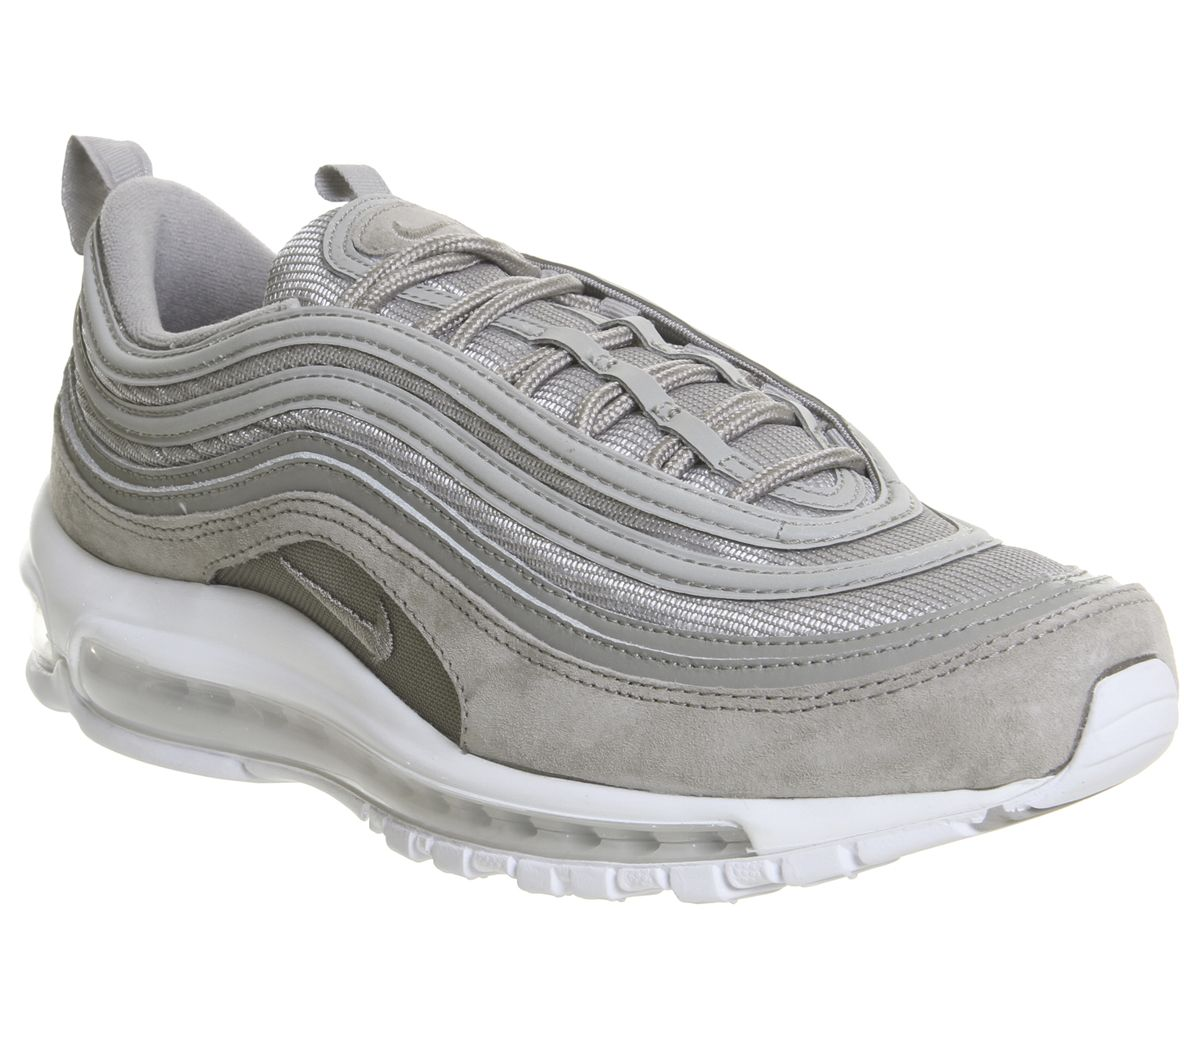 0229ae5a71f Nike Air Max 97 Trainers Cobblestone White - His trainers